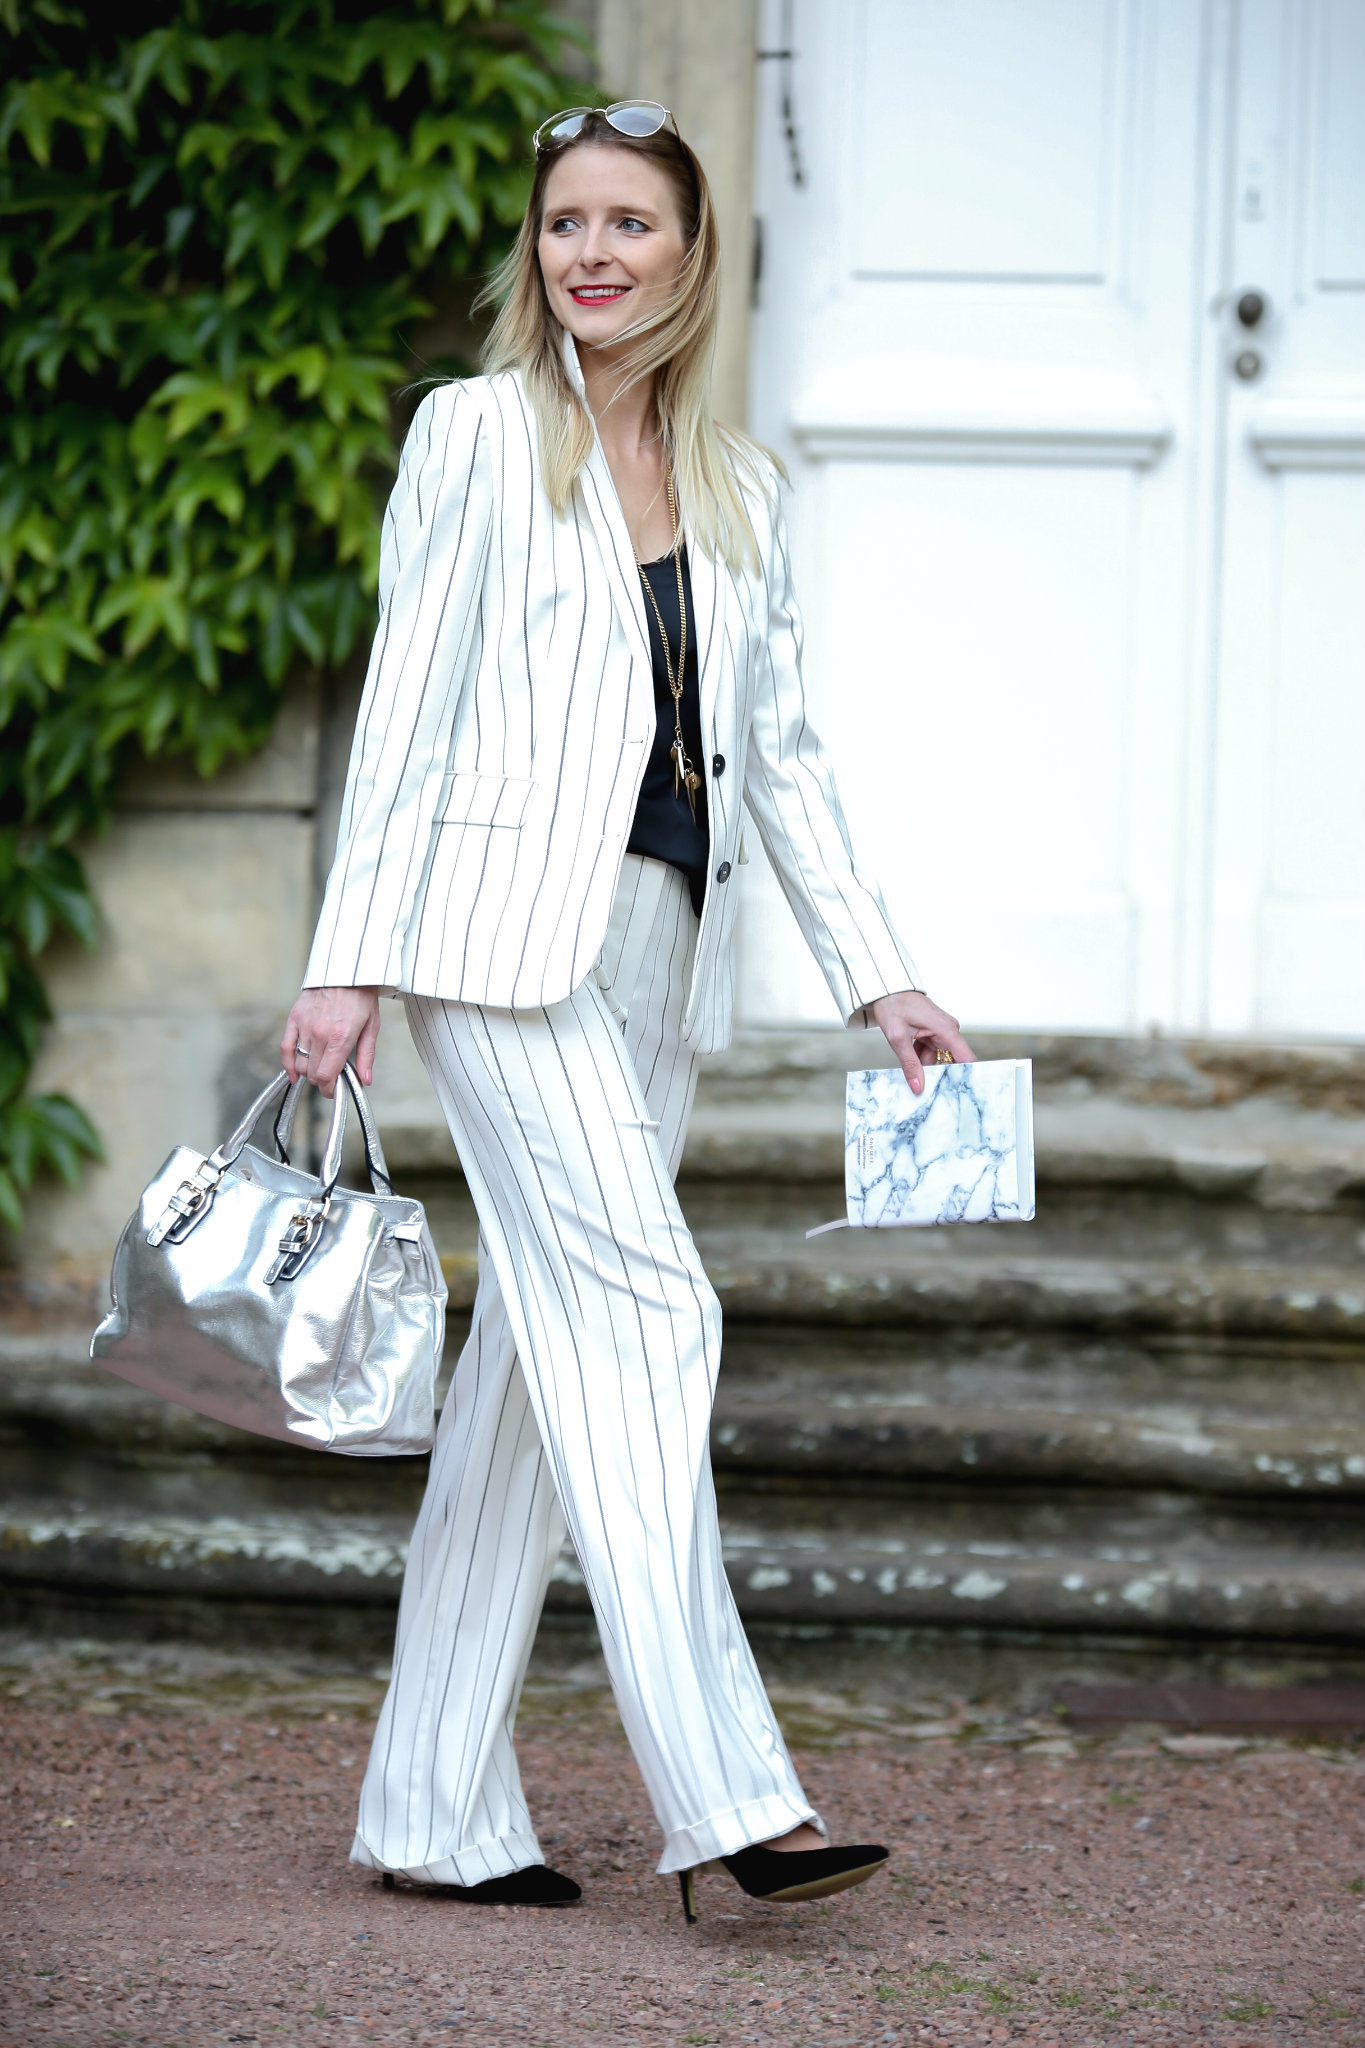 MOD-by-Monique-Looks-Girl-Boss-Pinstriped-Suit-19-pix